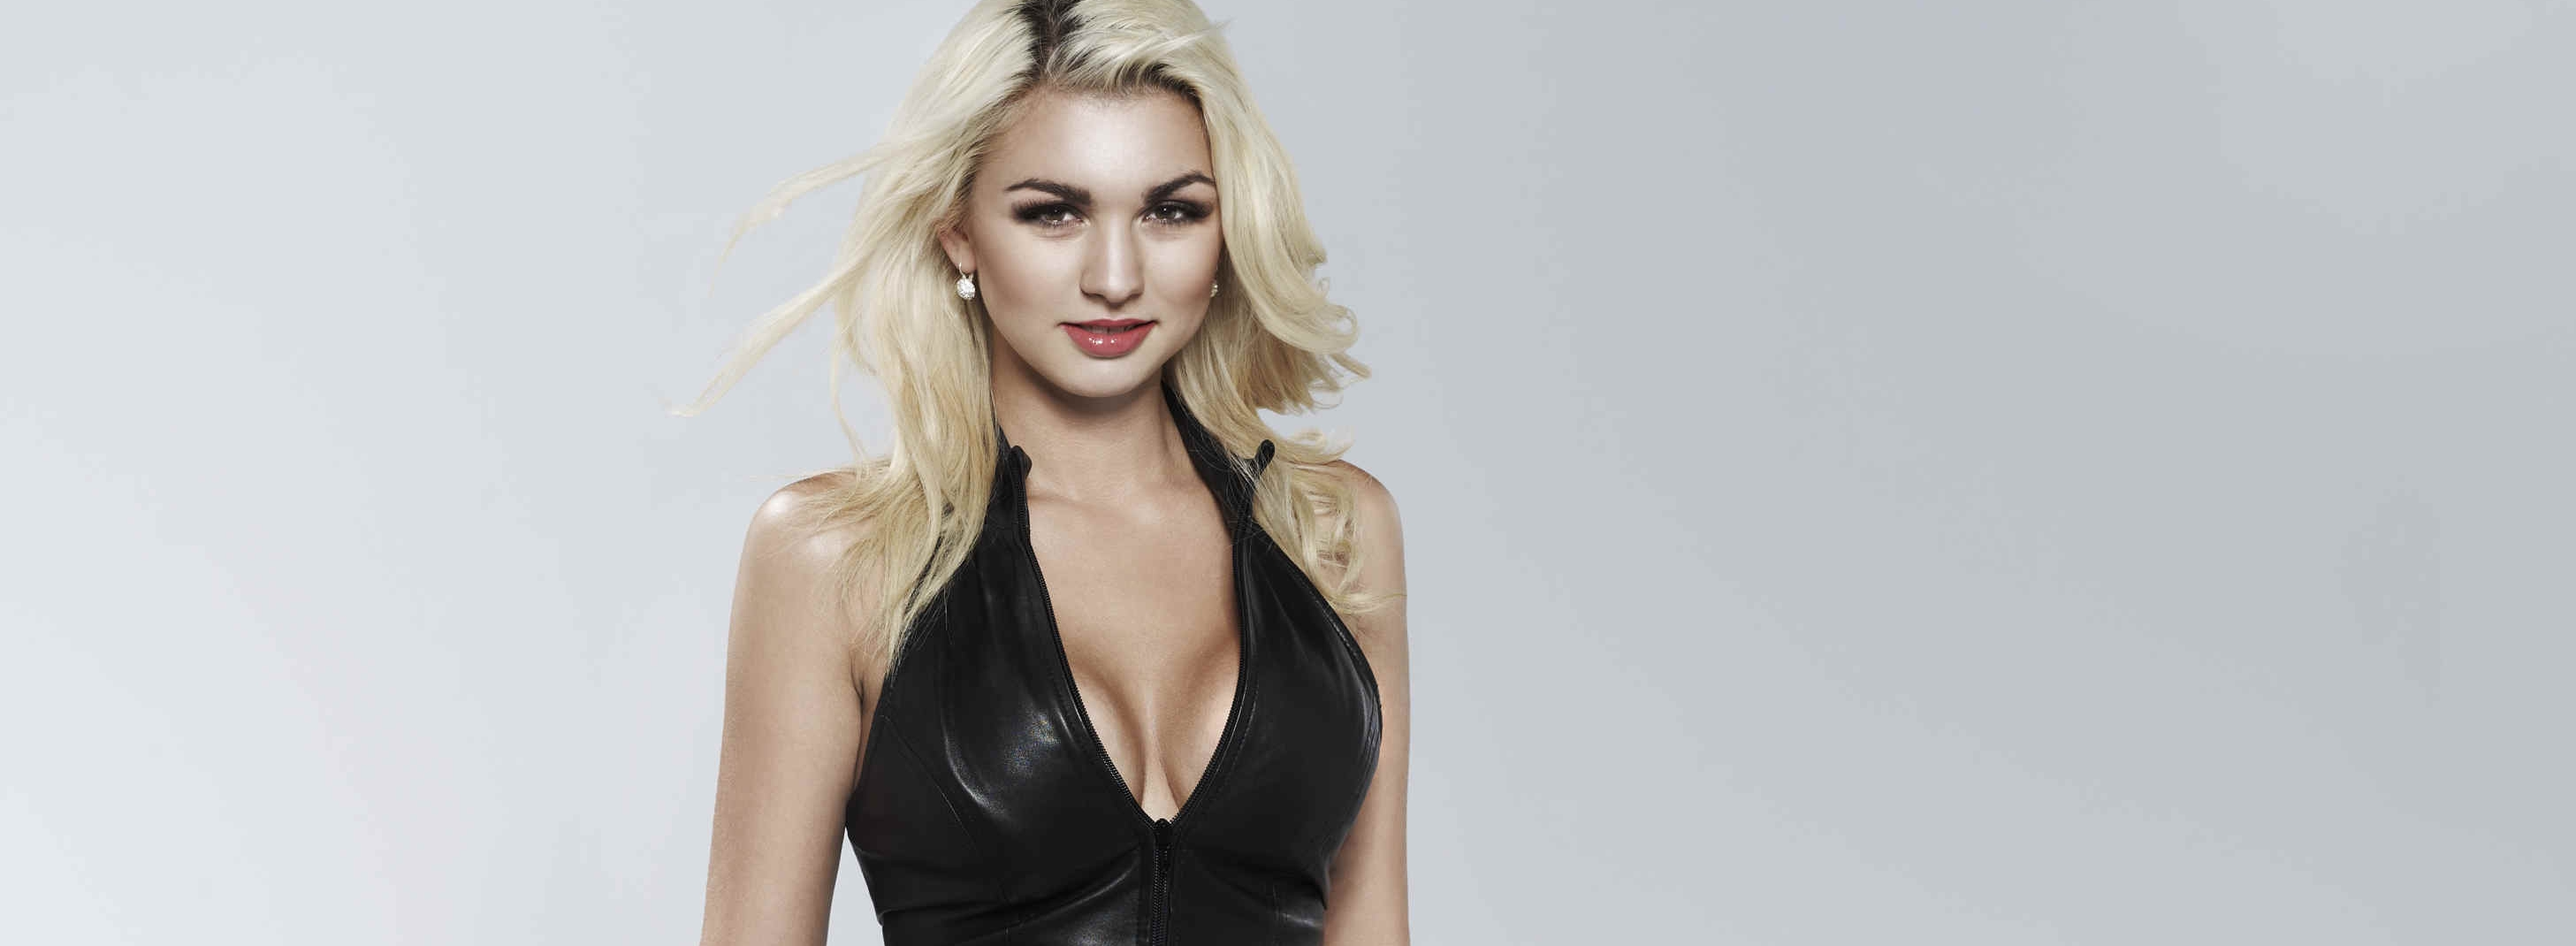 Natalia Osada Promi Big Brother 2013 Auge